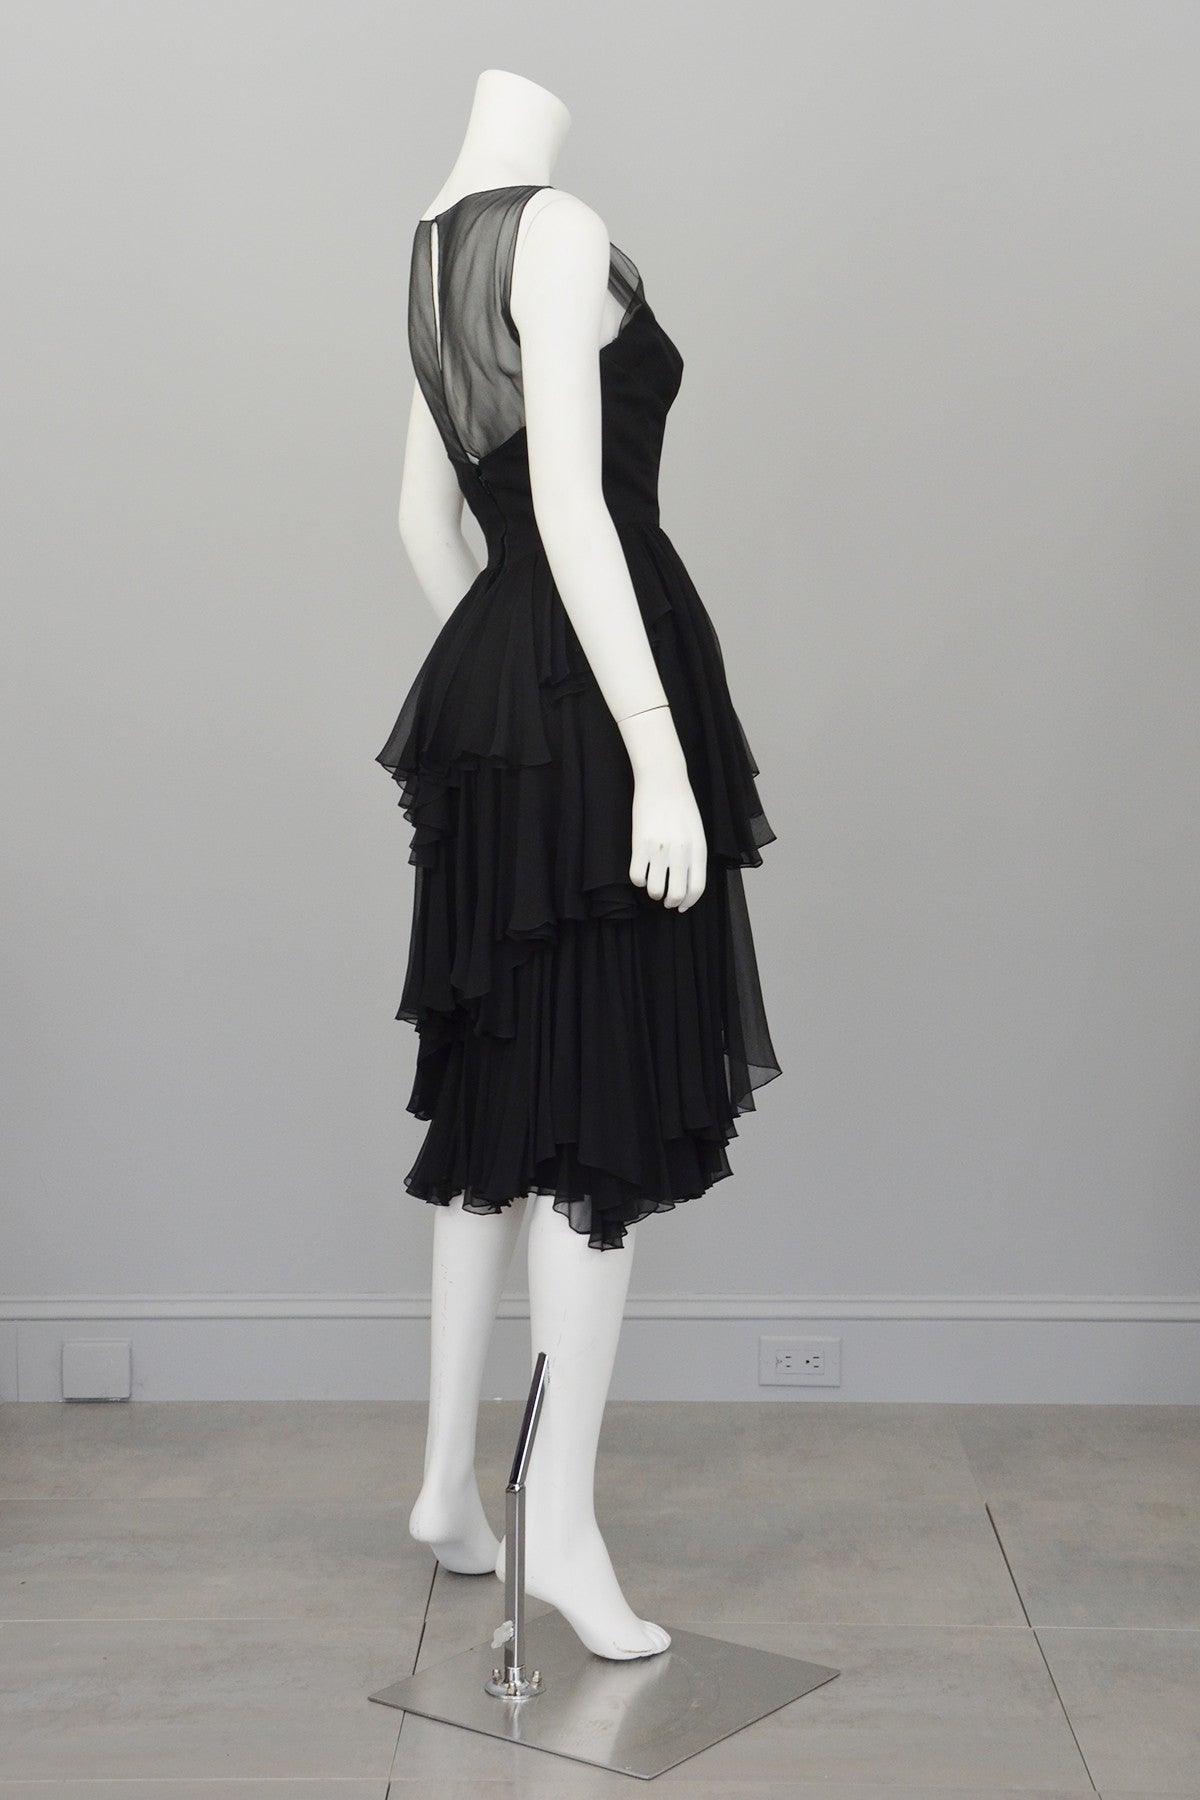 Vintage 1960s Black Chiffon Tiered Skirt Cocktail Dress